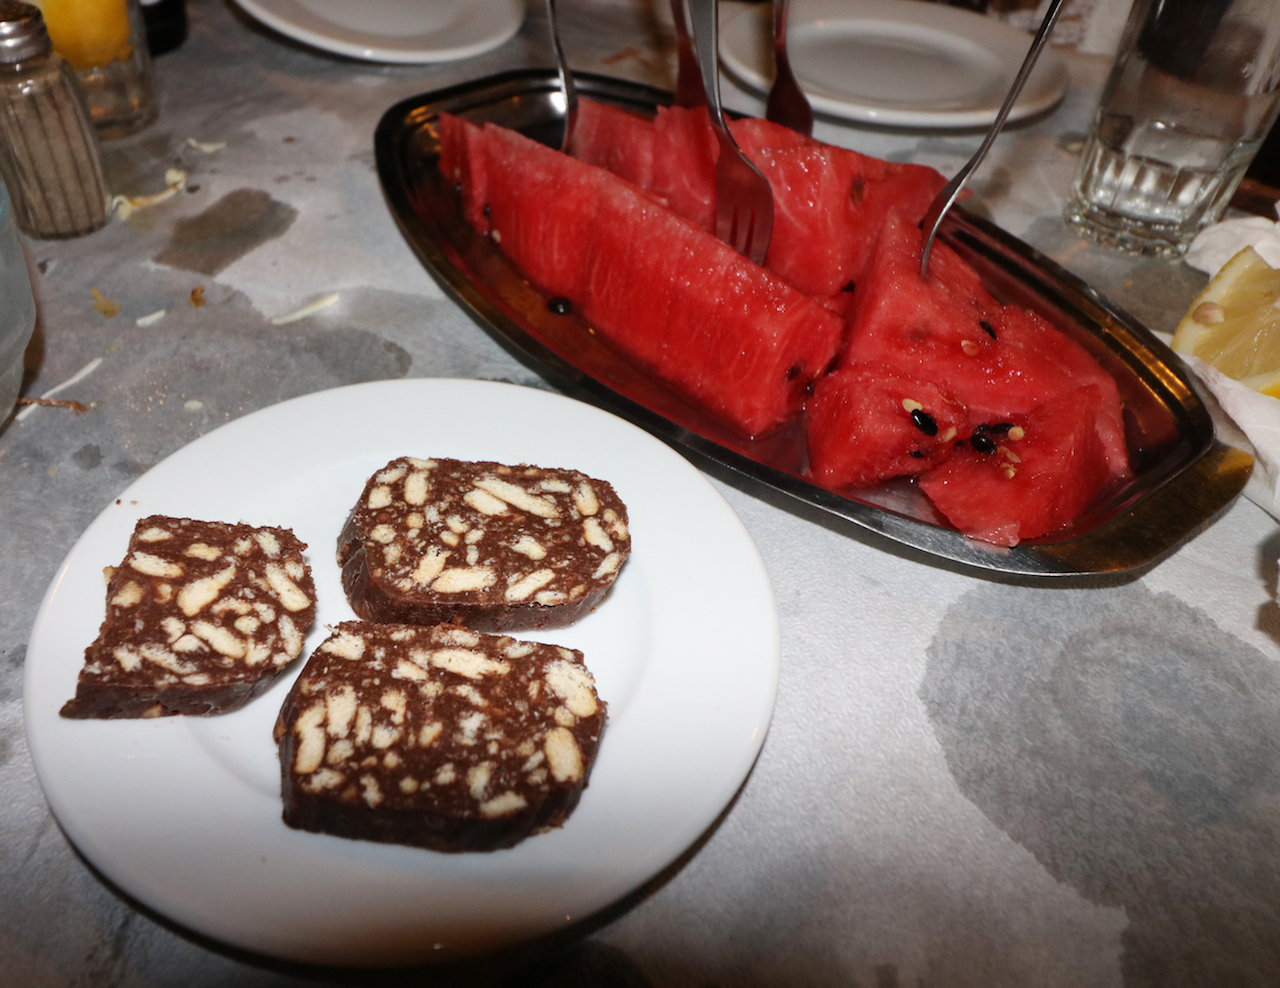 chocolate-salami-and-watermelon-copy